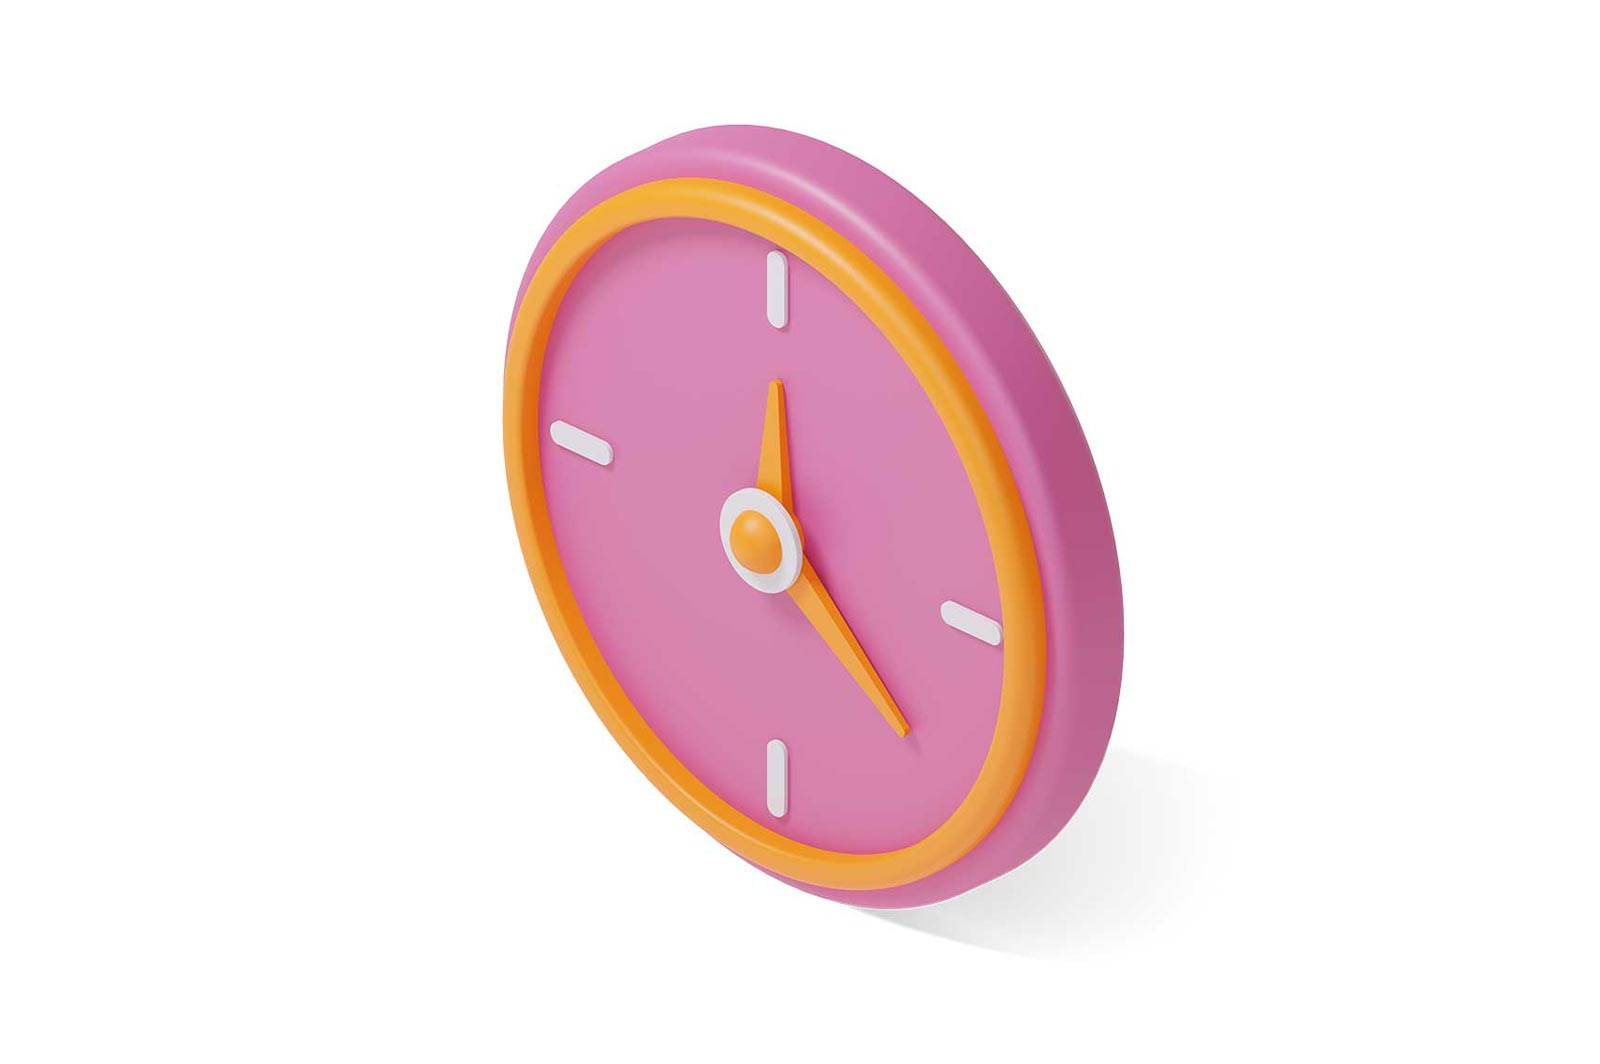 Pink wall clock with orange hands 3d rendered illustration. Minimalistic watch on white background. Business timer. Isometric design element for project